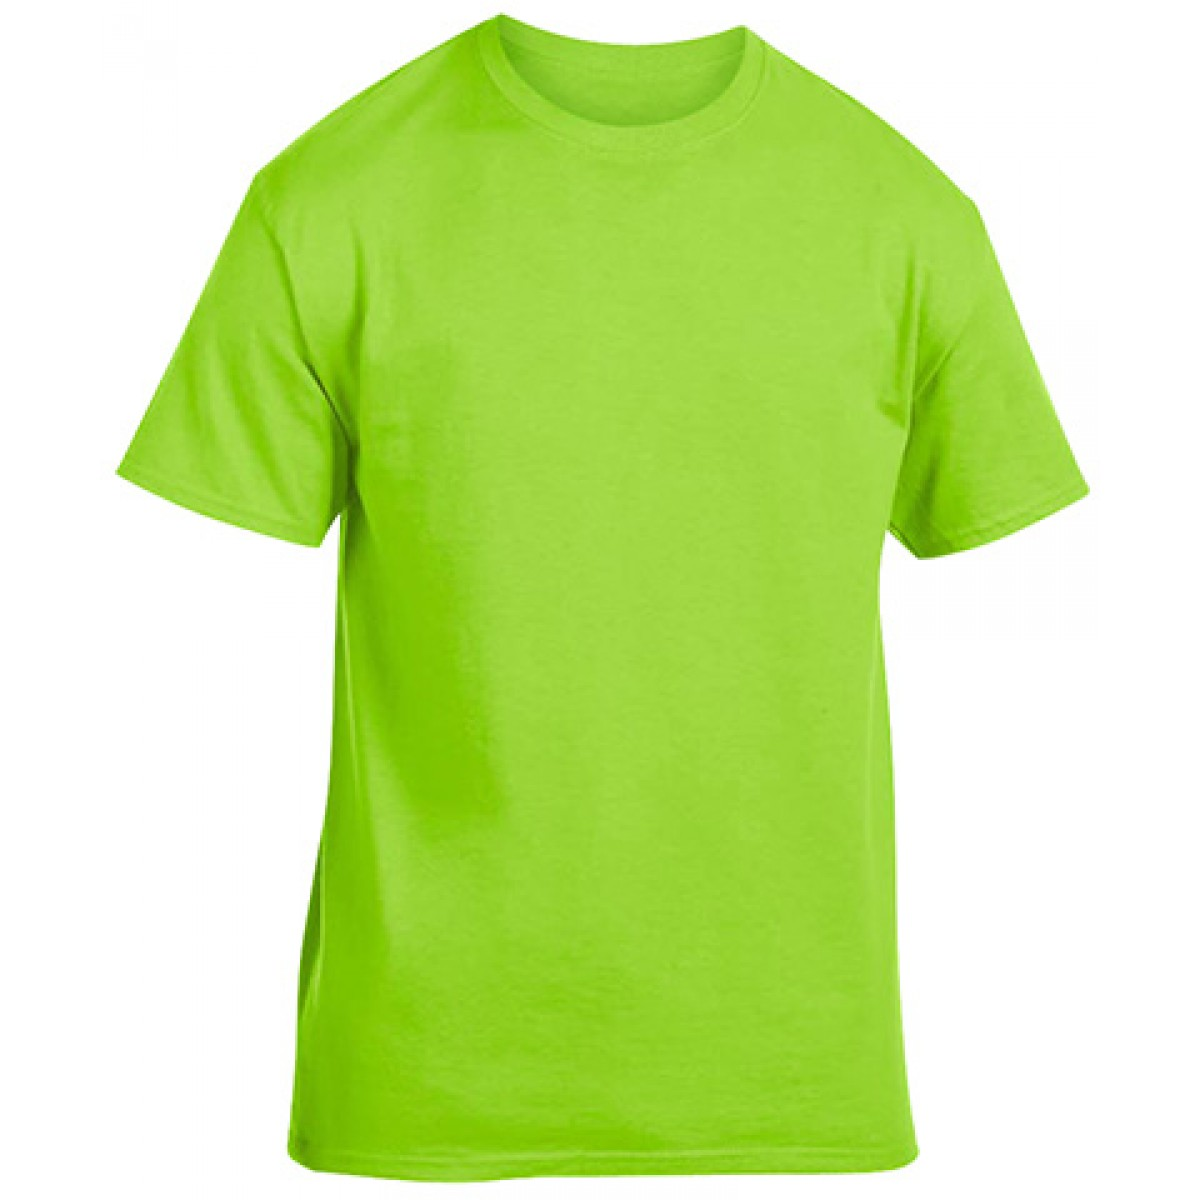 Soft 100% Cotton T-Shirt-Lime Green-3XL